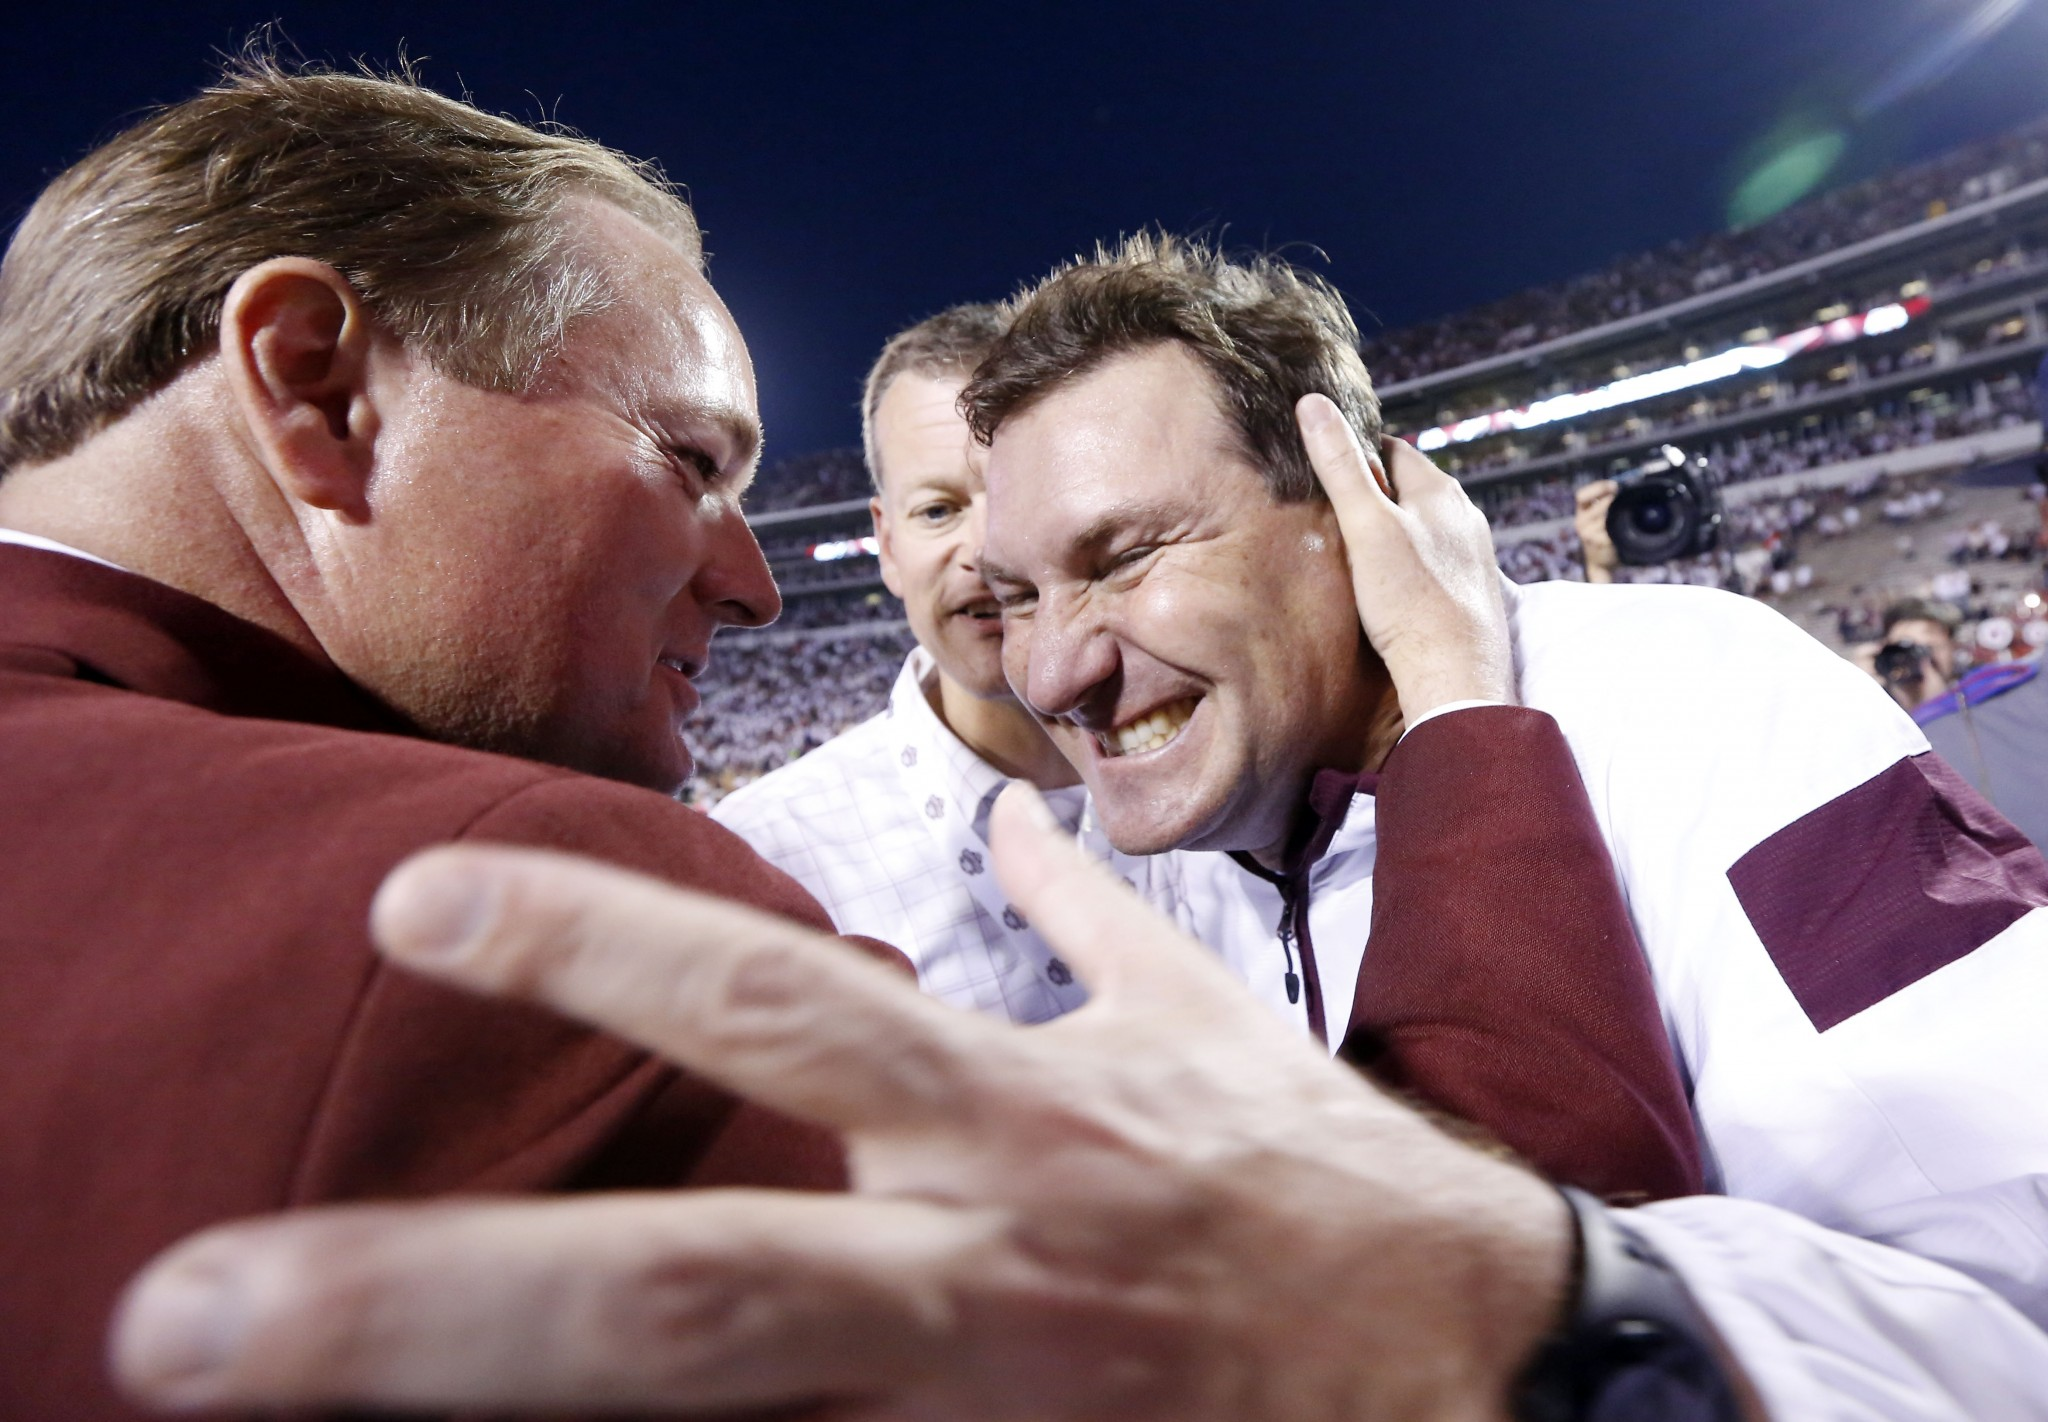 Scott Stricklin, left, has been Mississippi State's athletic director since 2010. (AP Photo/Rogelio V. Solis)